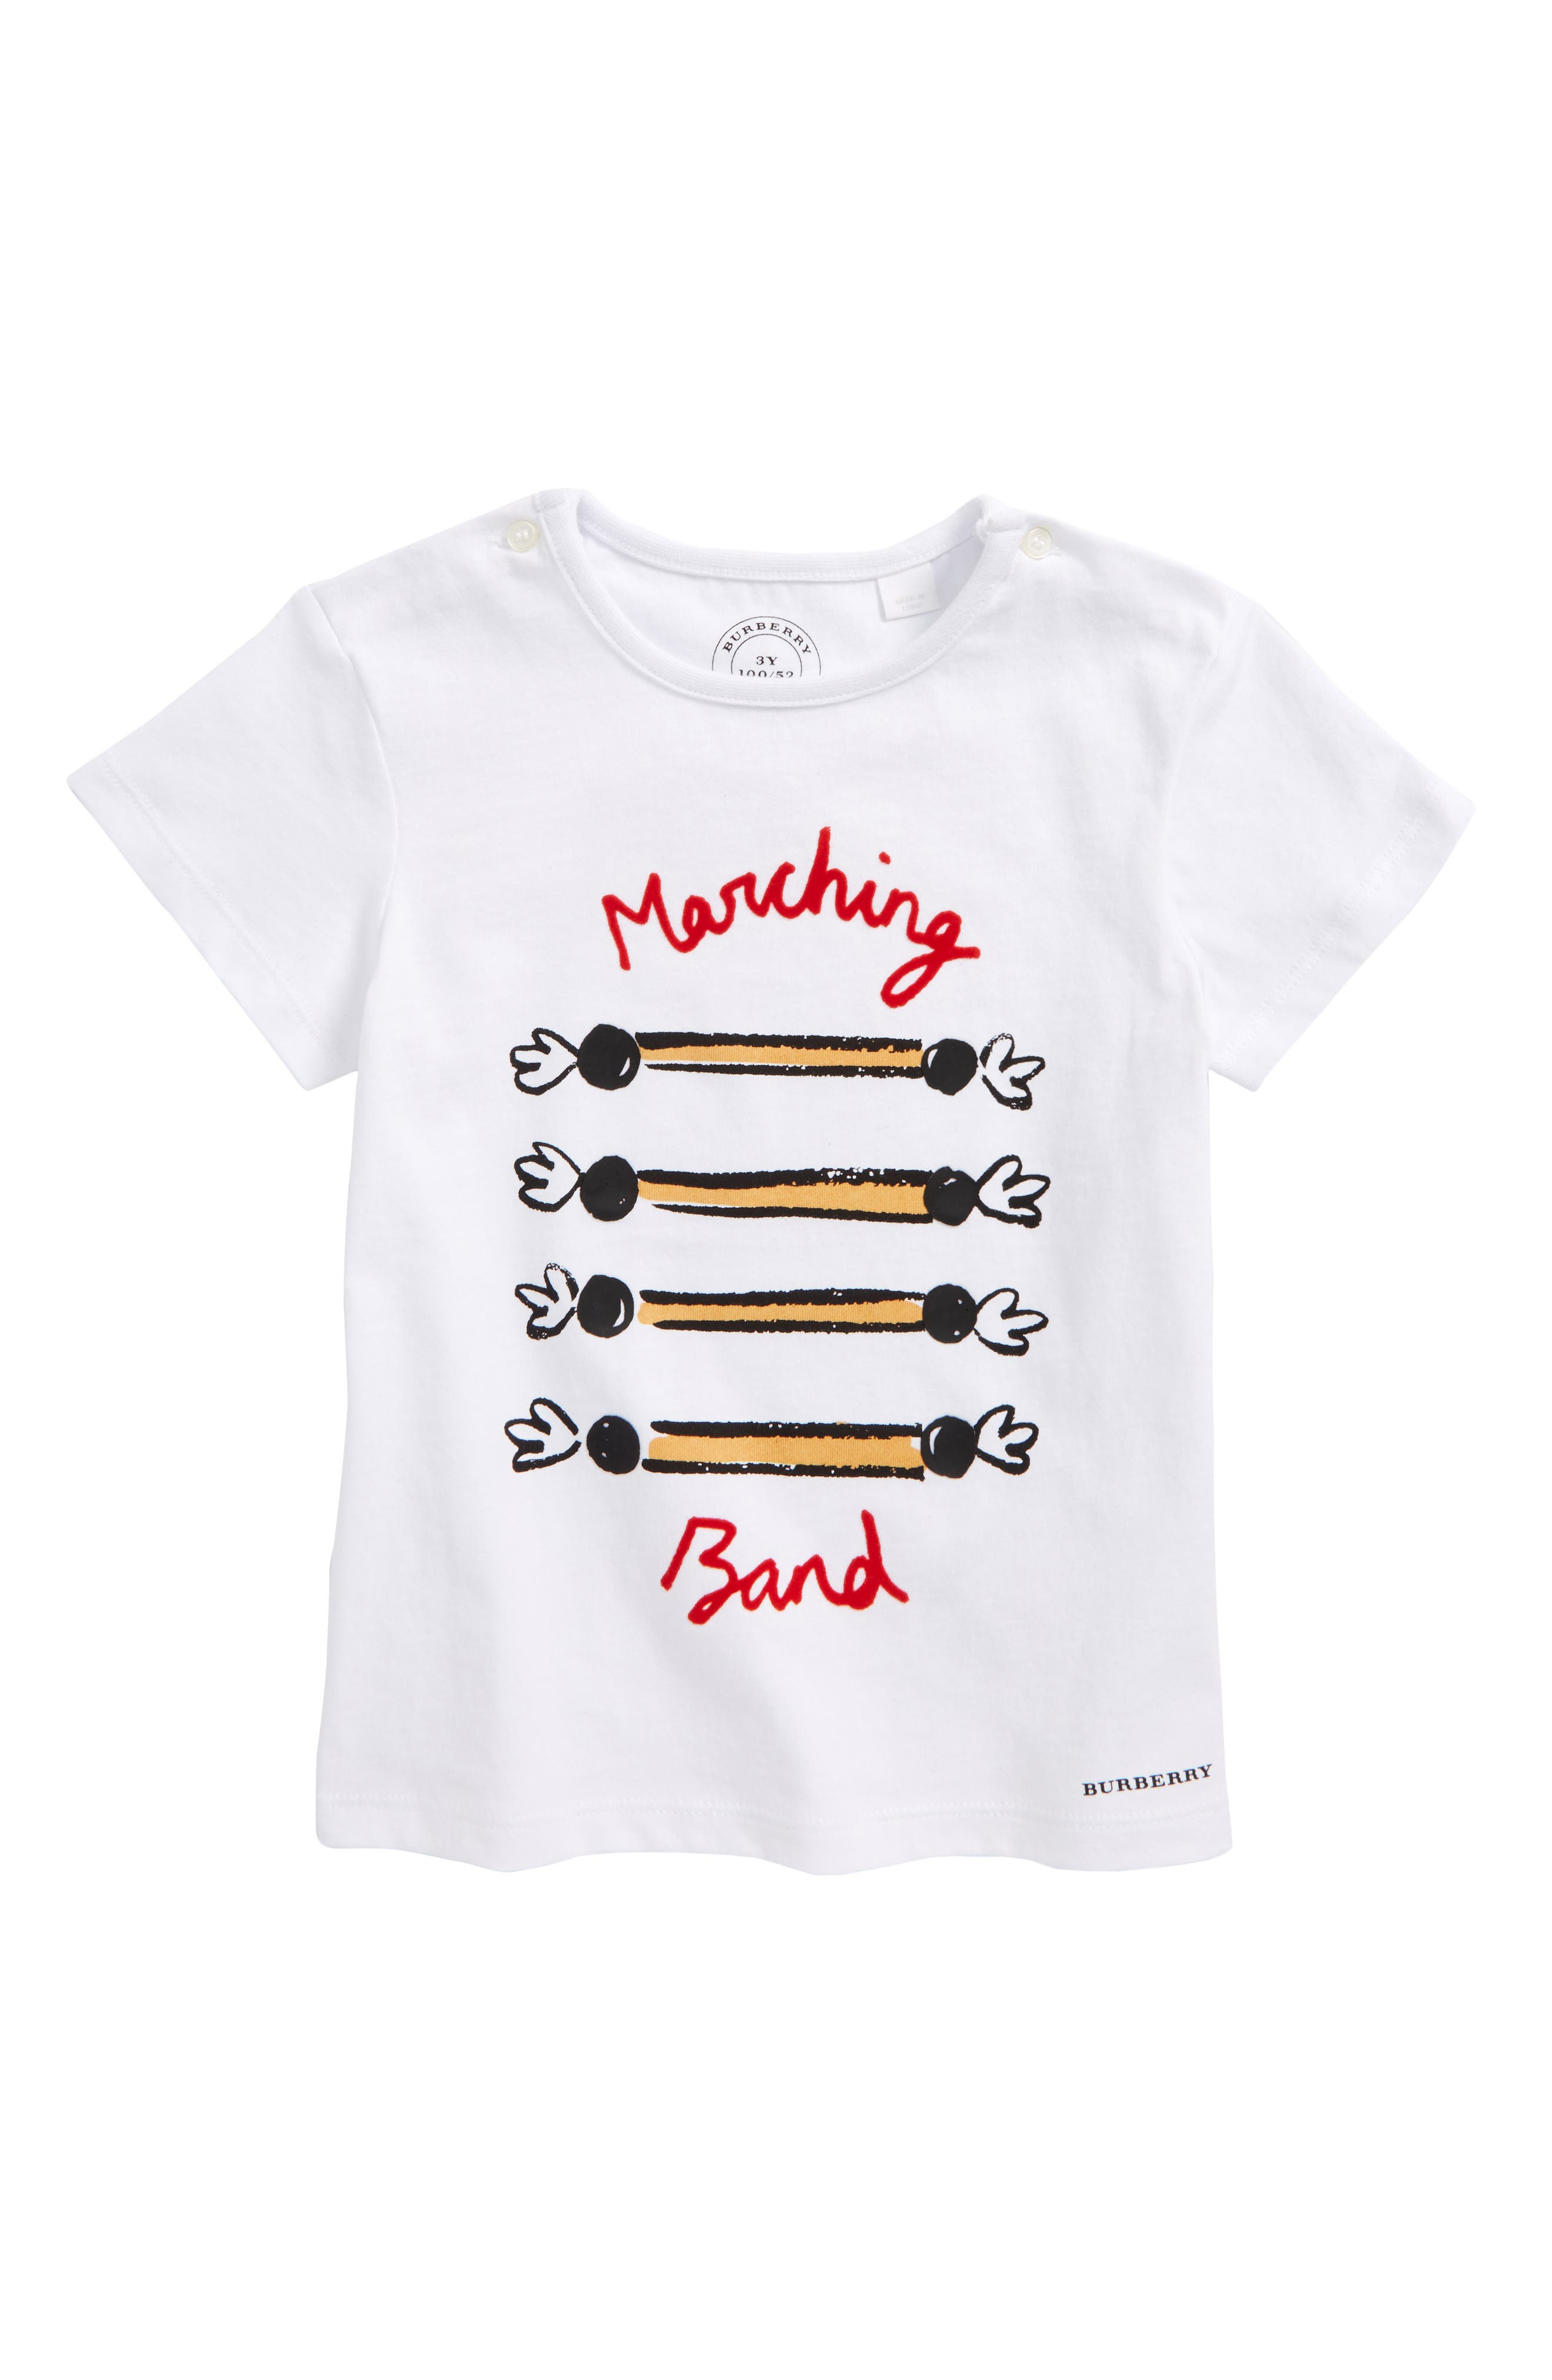 Marching Band Tee,                         Main,                         color, White